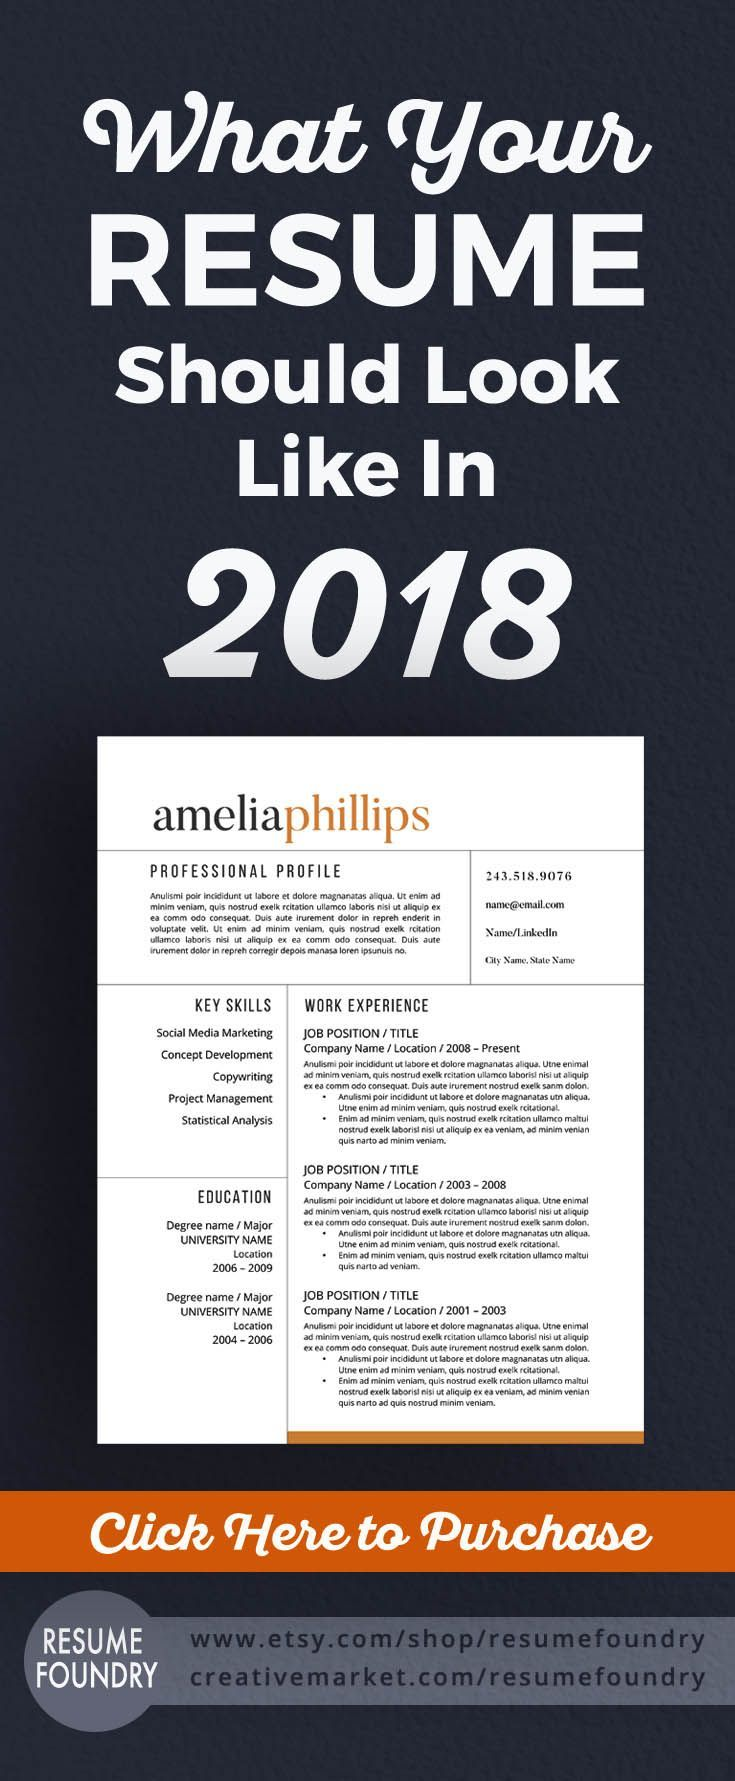 time to update your resume for 2018  we guarantee your